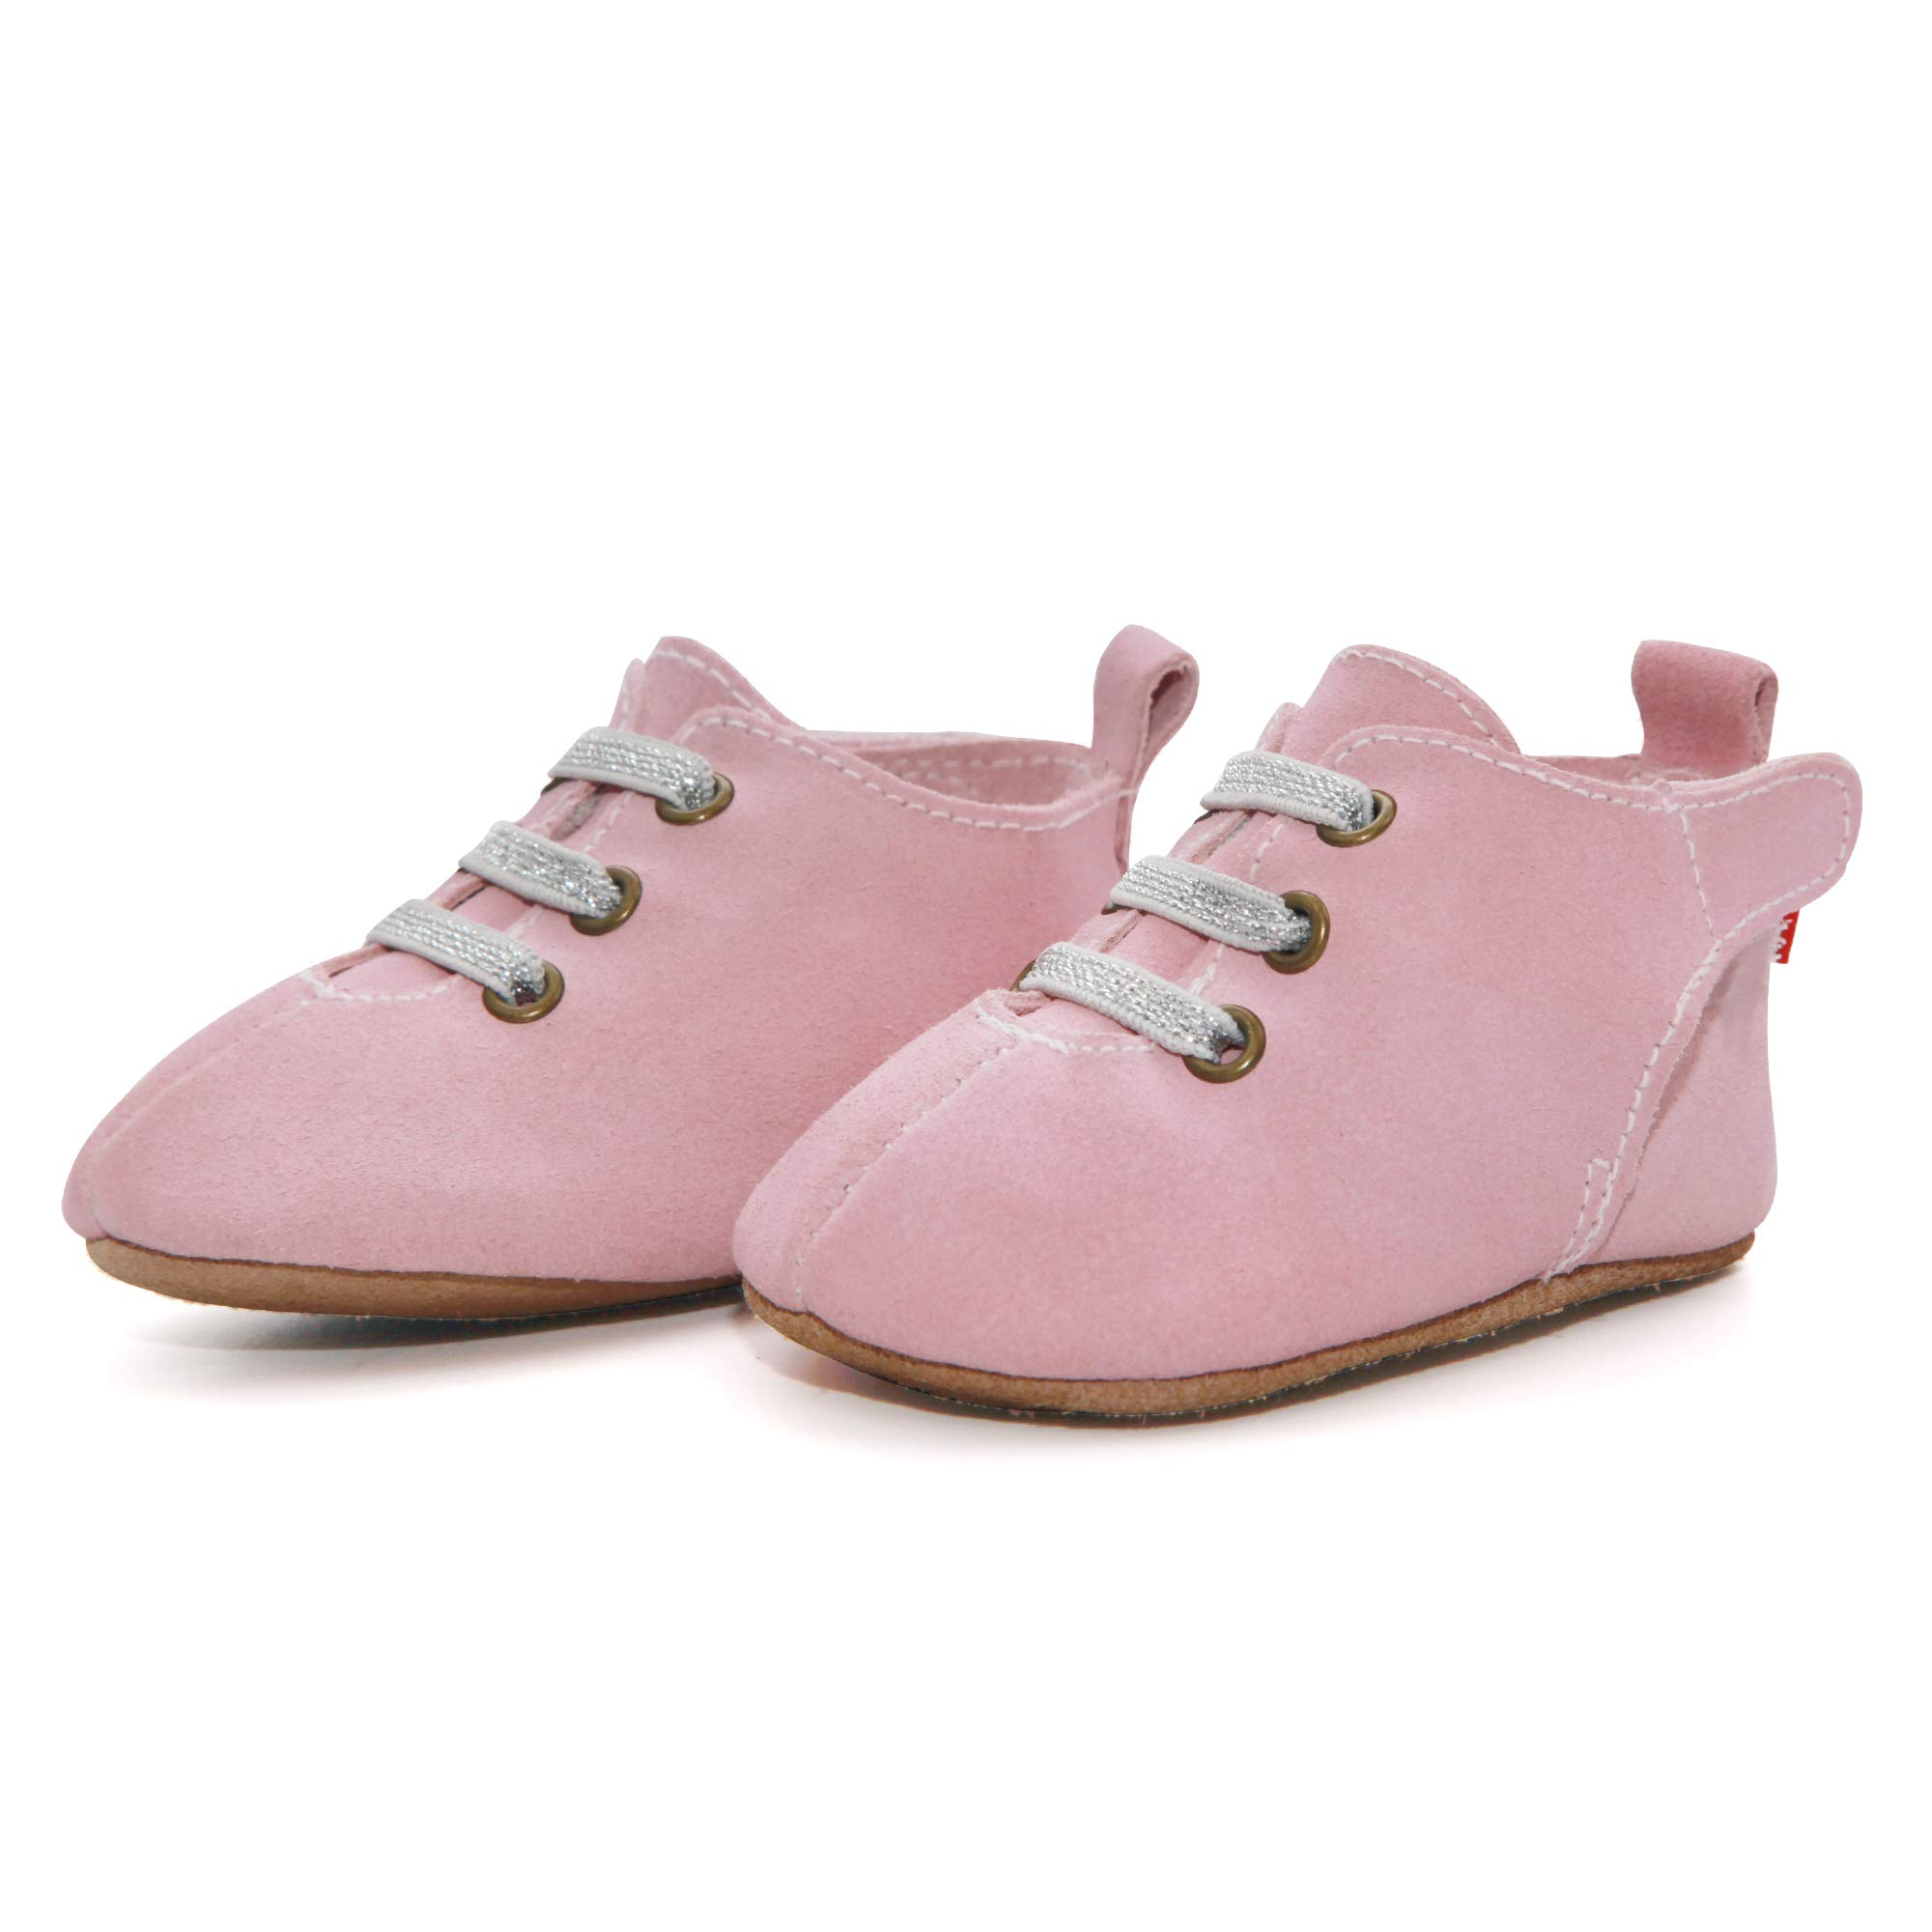 Zutano Leather Oxford Baby Shoes, Non-Slip Soft Soles, Unisex, for Infants, Babies, and Toddlers, Hot Pink, 18M-24M by Zutano